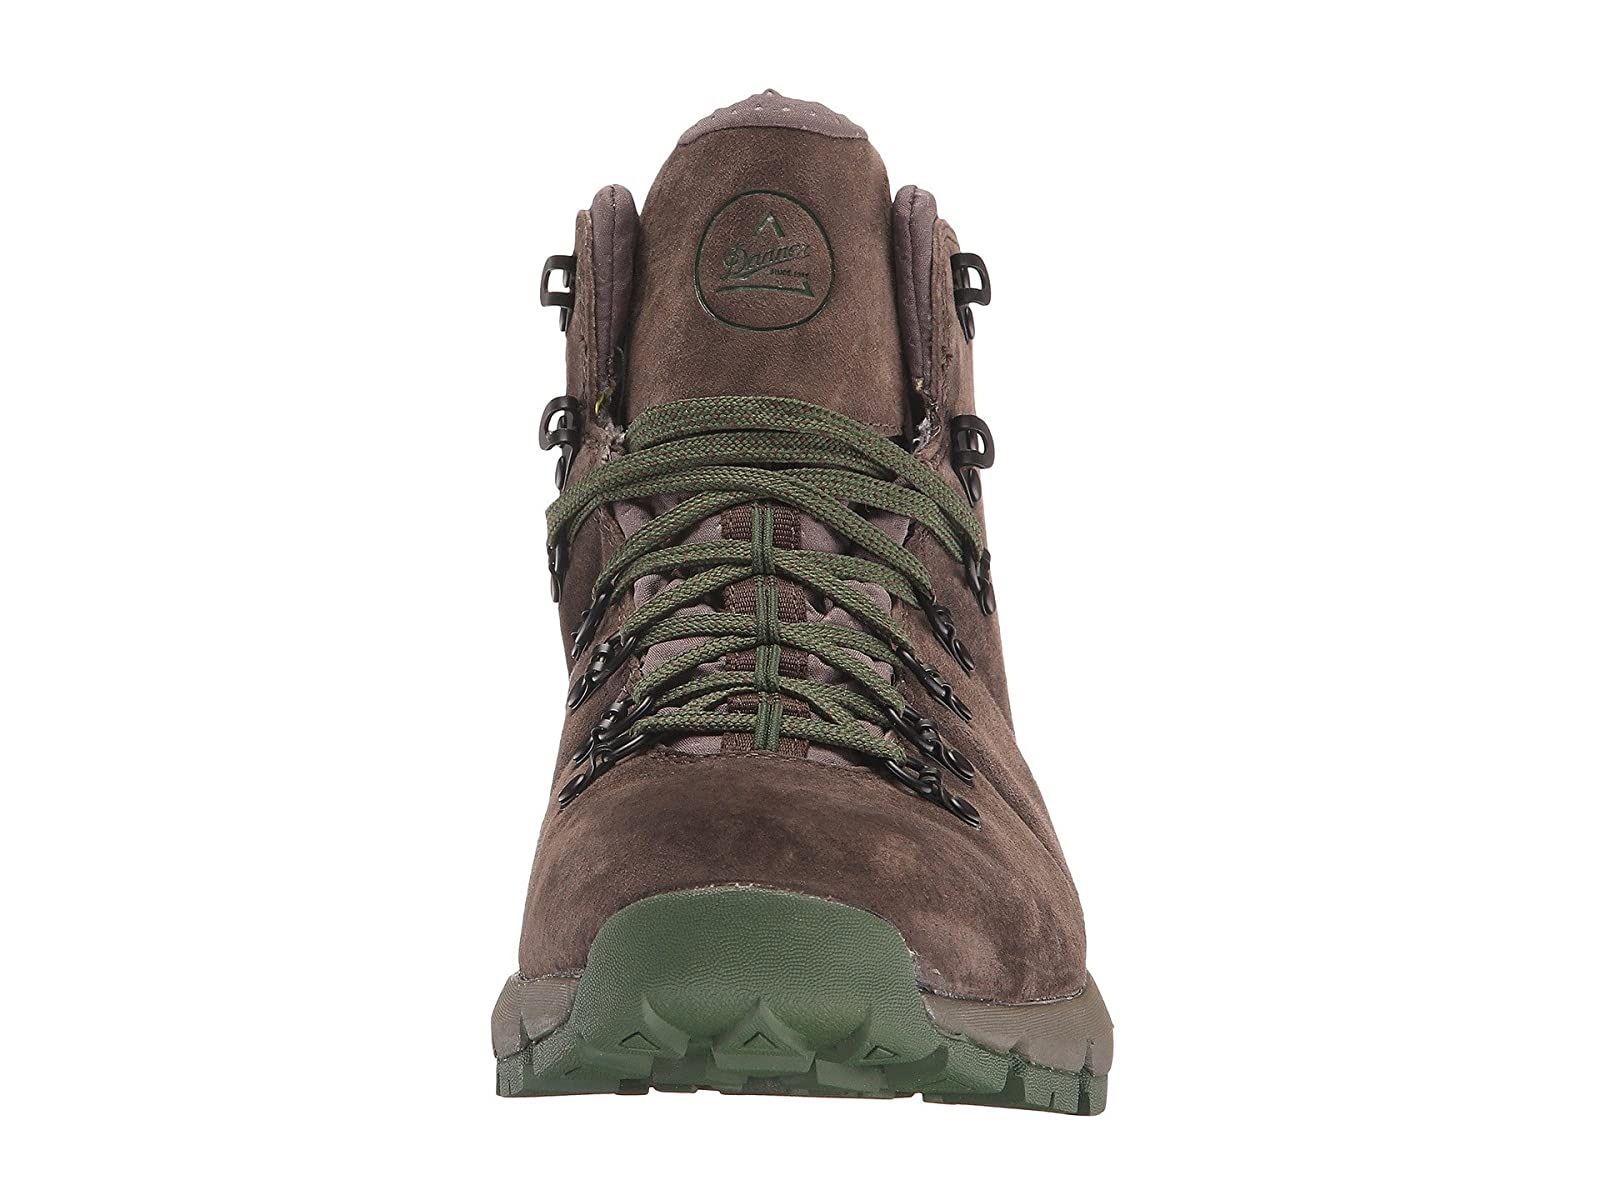 homme / femme: danner mountain 600 & 4,5 & 600 # 34;: couleurs accrocheuses c8ad46